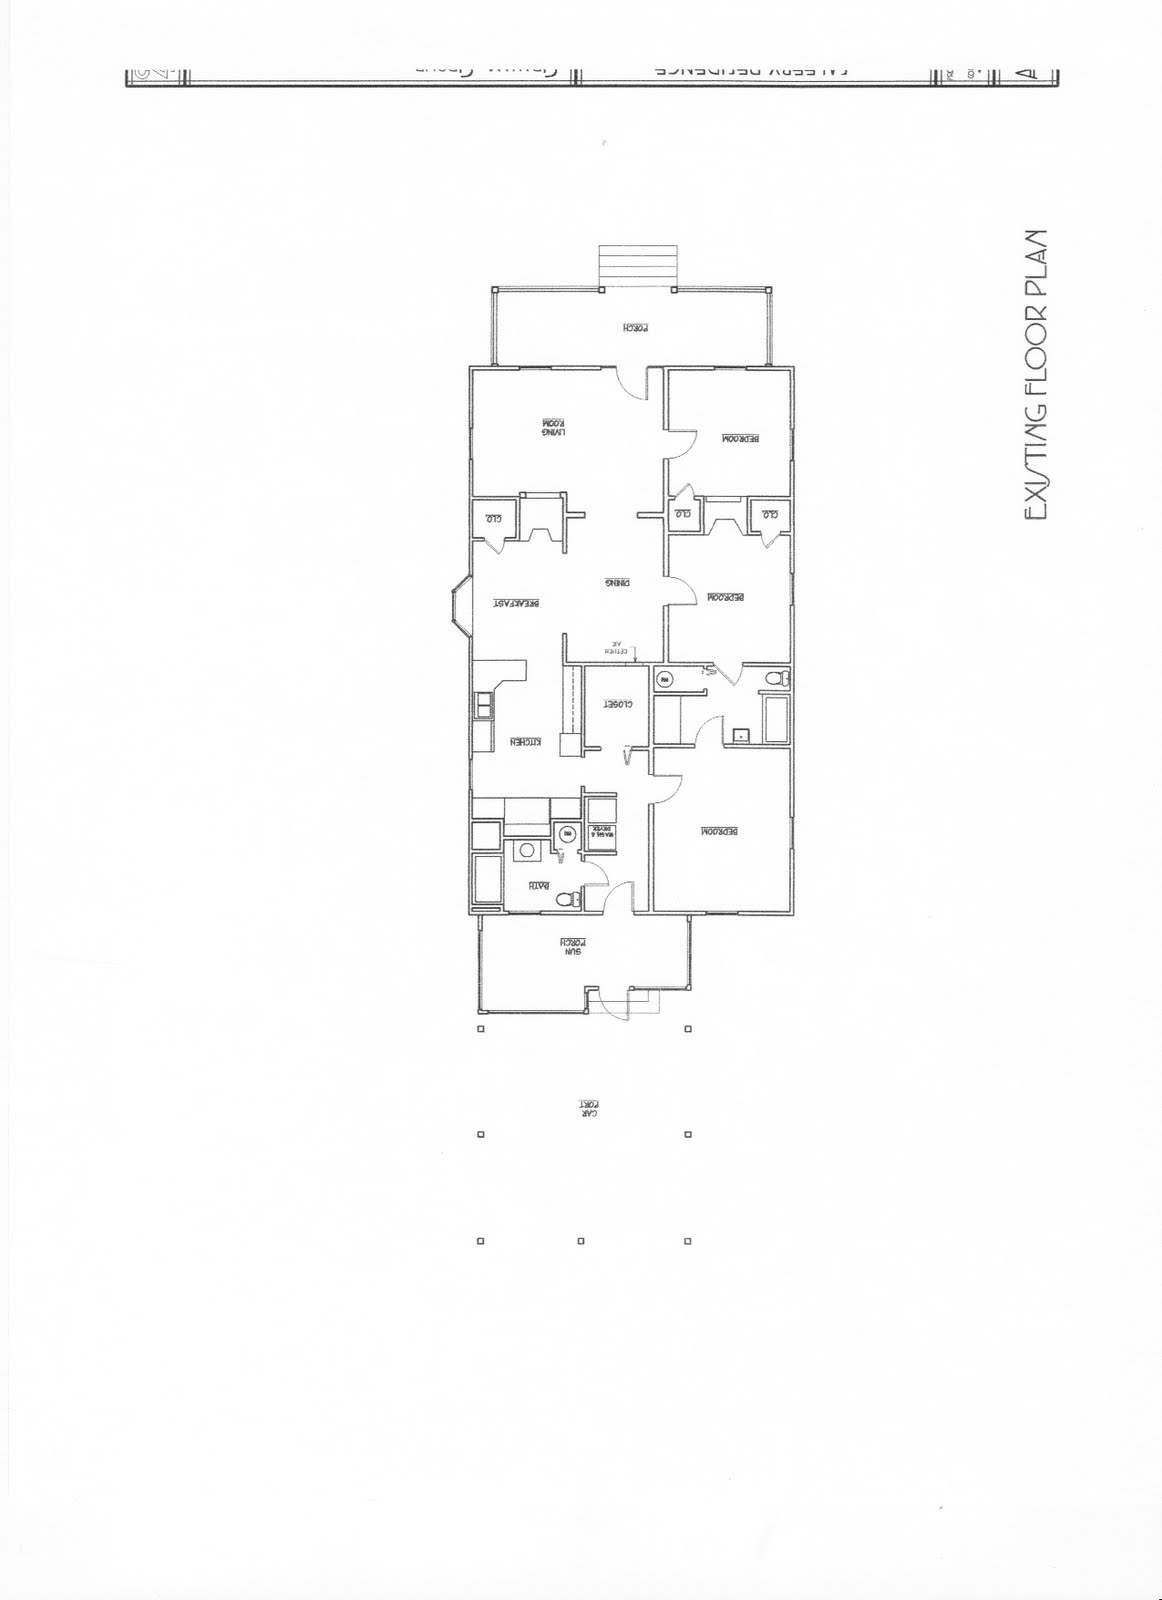 Our old house existing floor plan for How to get floor plans of an existing building